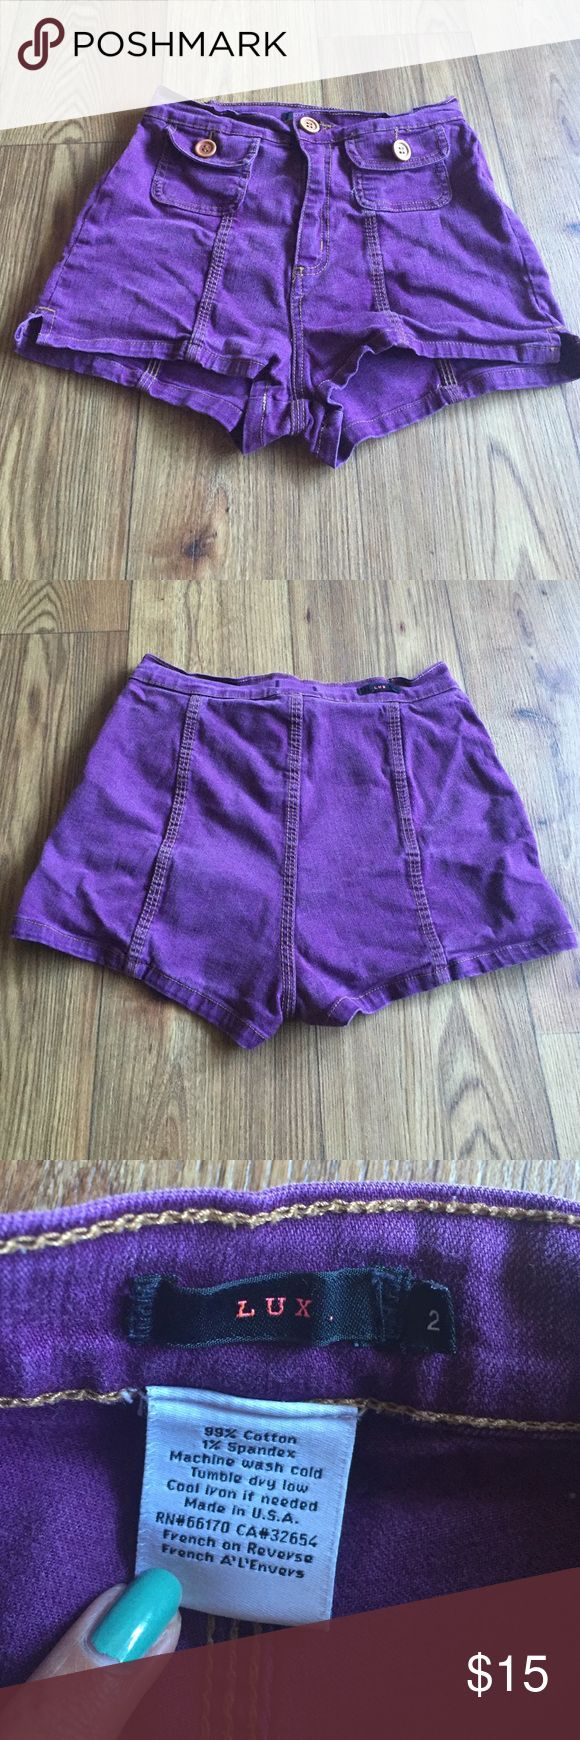 Urban Outifitters Denim high waisted shorts Donating if not purchased soon 🍩 Plum wine colored shorts says size 2 but can really fit anyone who wears size small. Worn but in good condition. Flattering for those with plump 🍑 and want to show a little cheek! Lux Shorts Jean Shorts